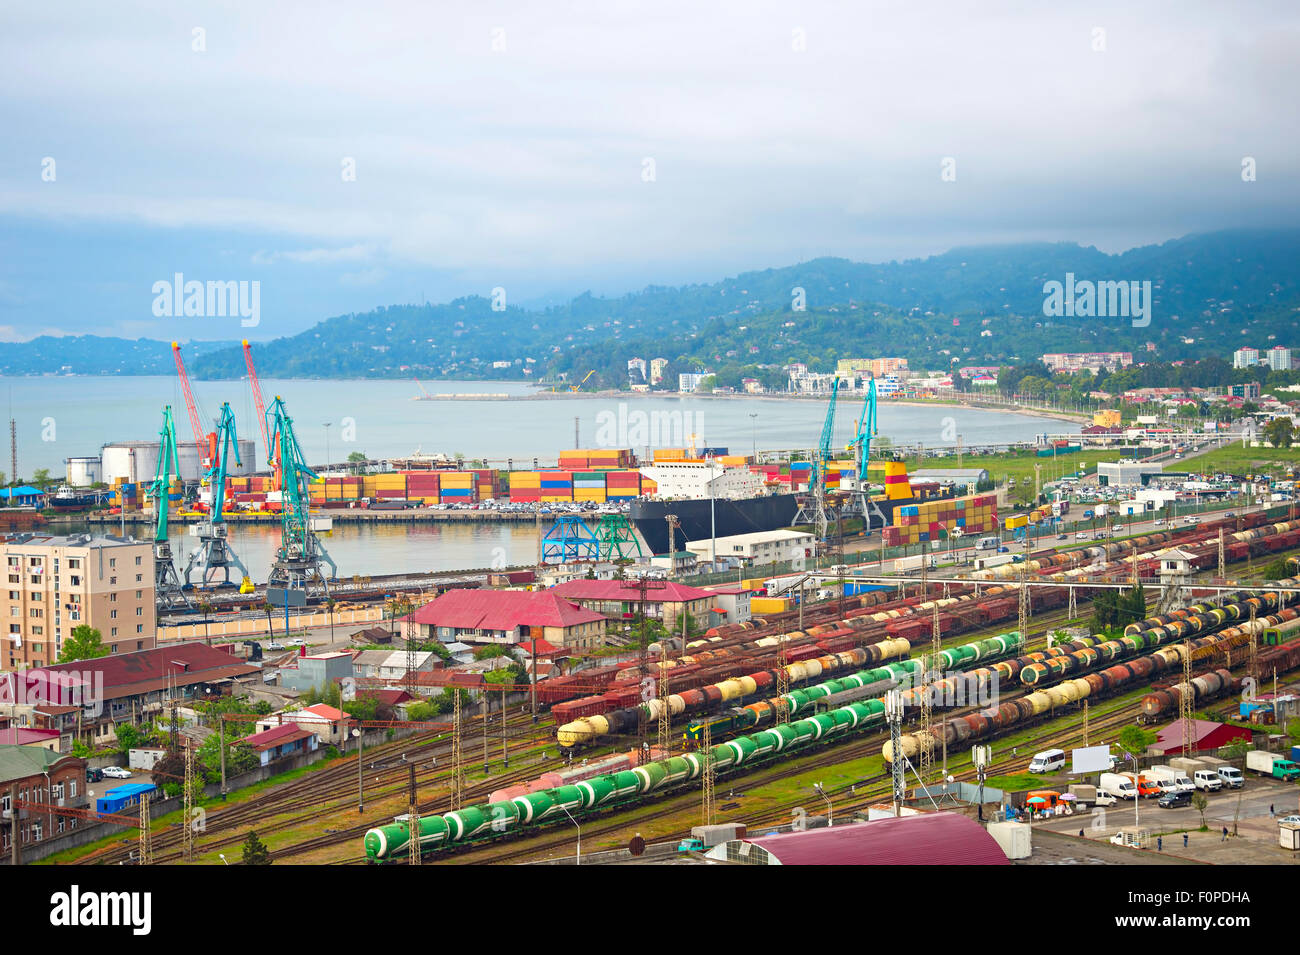 Overview of Batumi industrial sea port. Georgia Republic - Stock Image